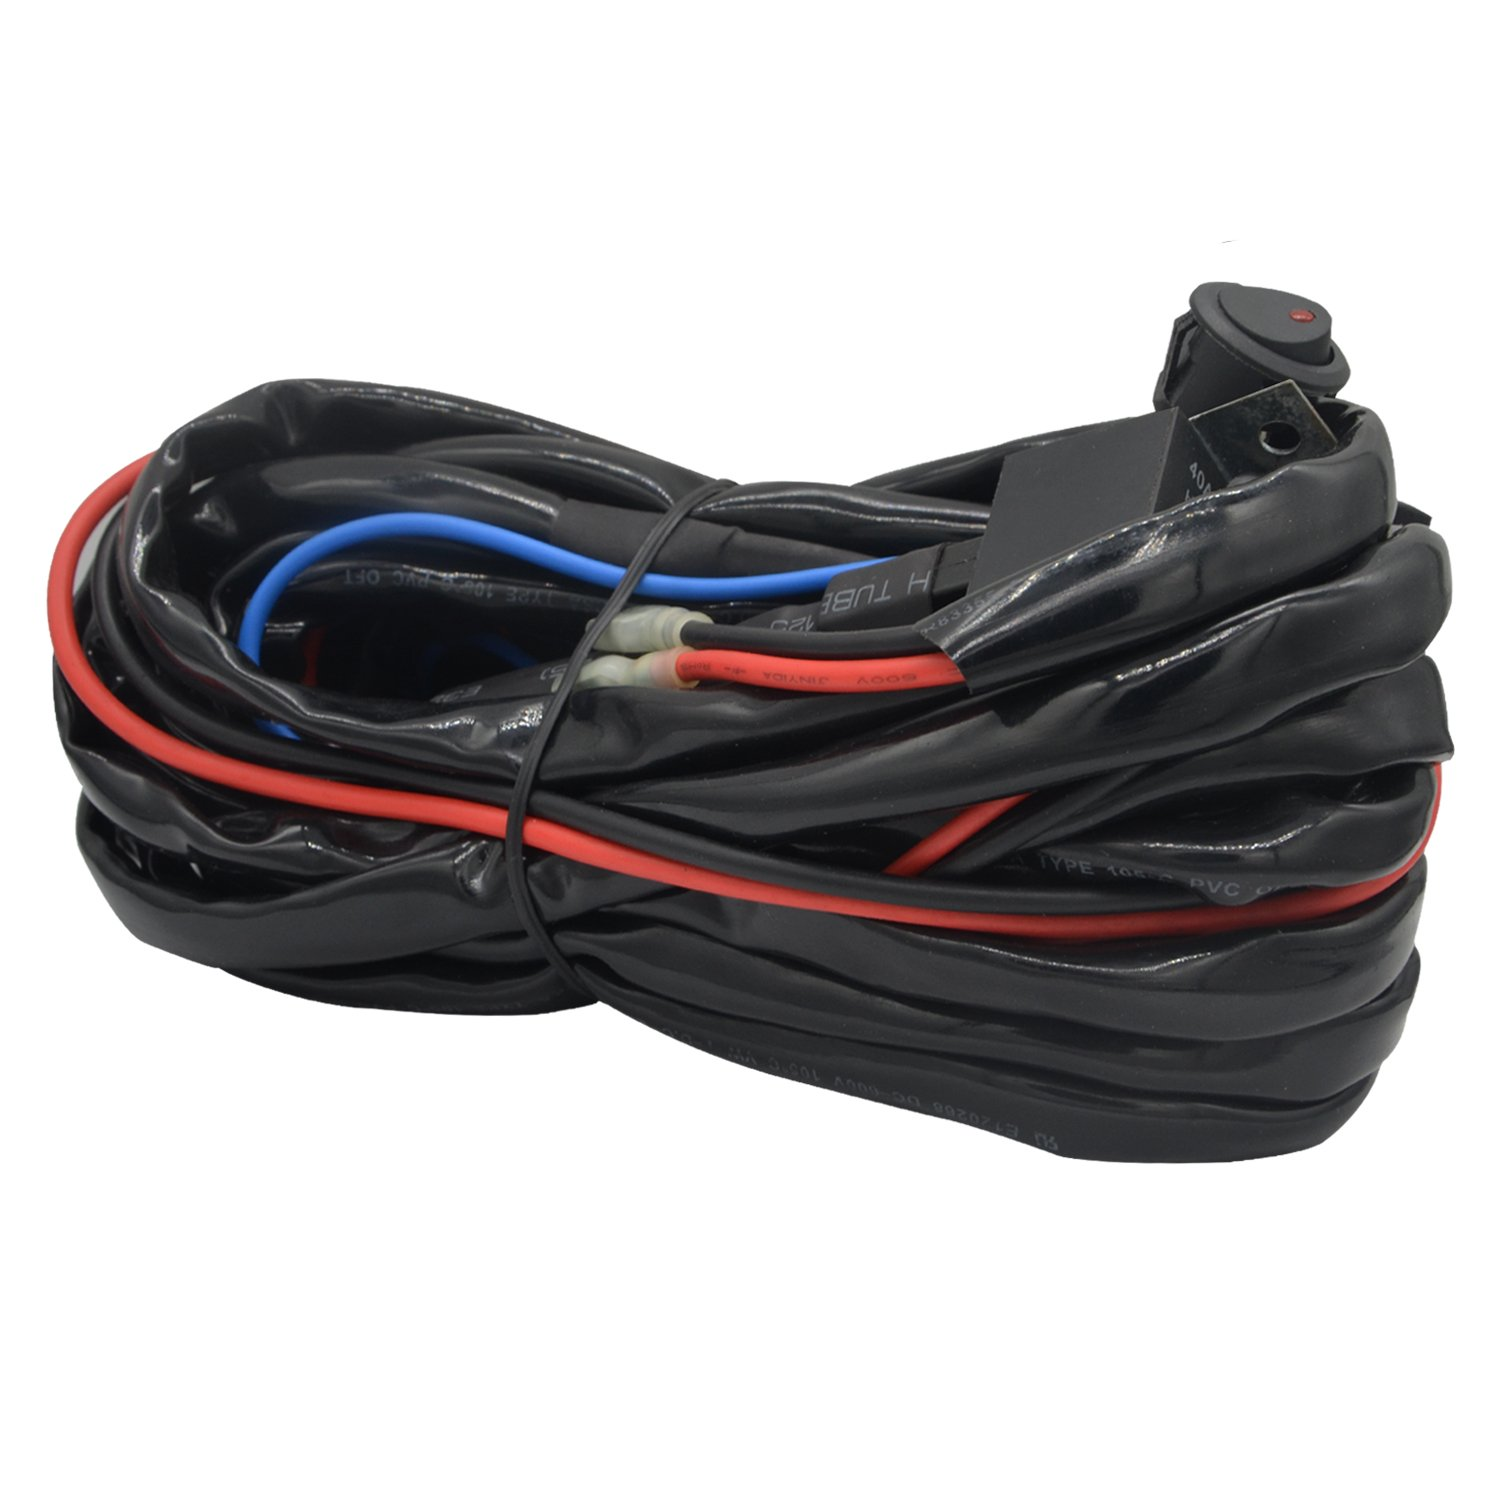 71hdbgsGjCL._SL1500_ amazon com wiring harnesses electrical automotive ksc-wa100 wiring harness at gsmportal.co